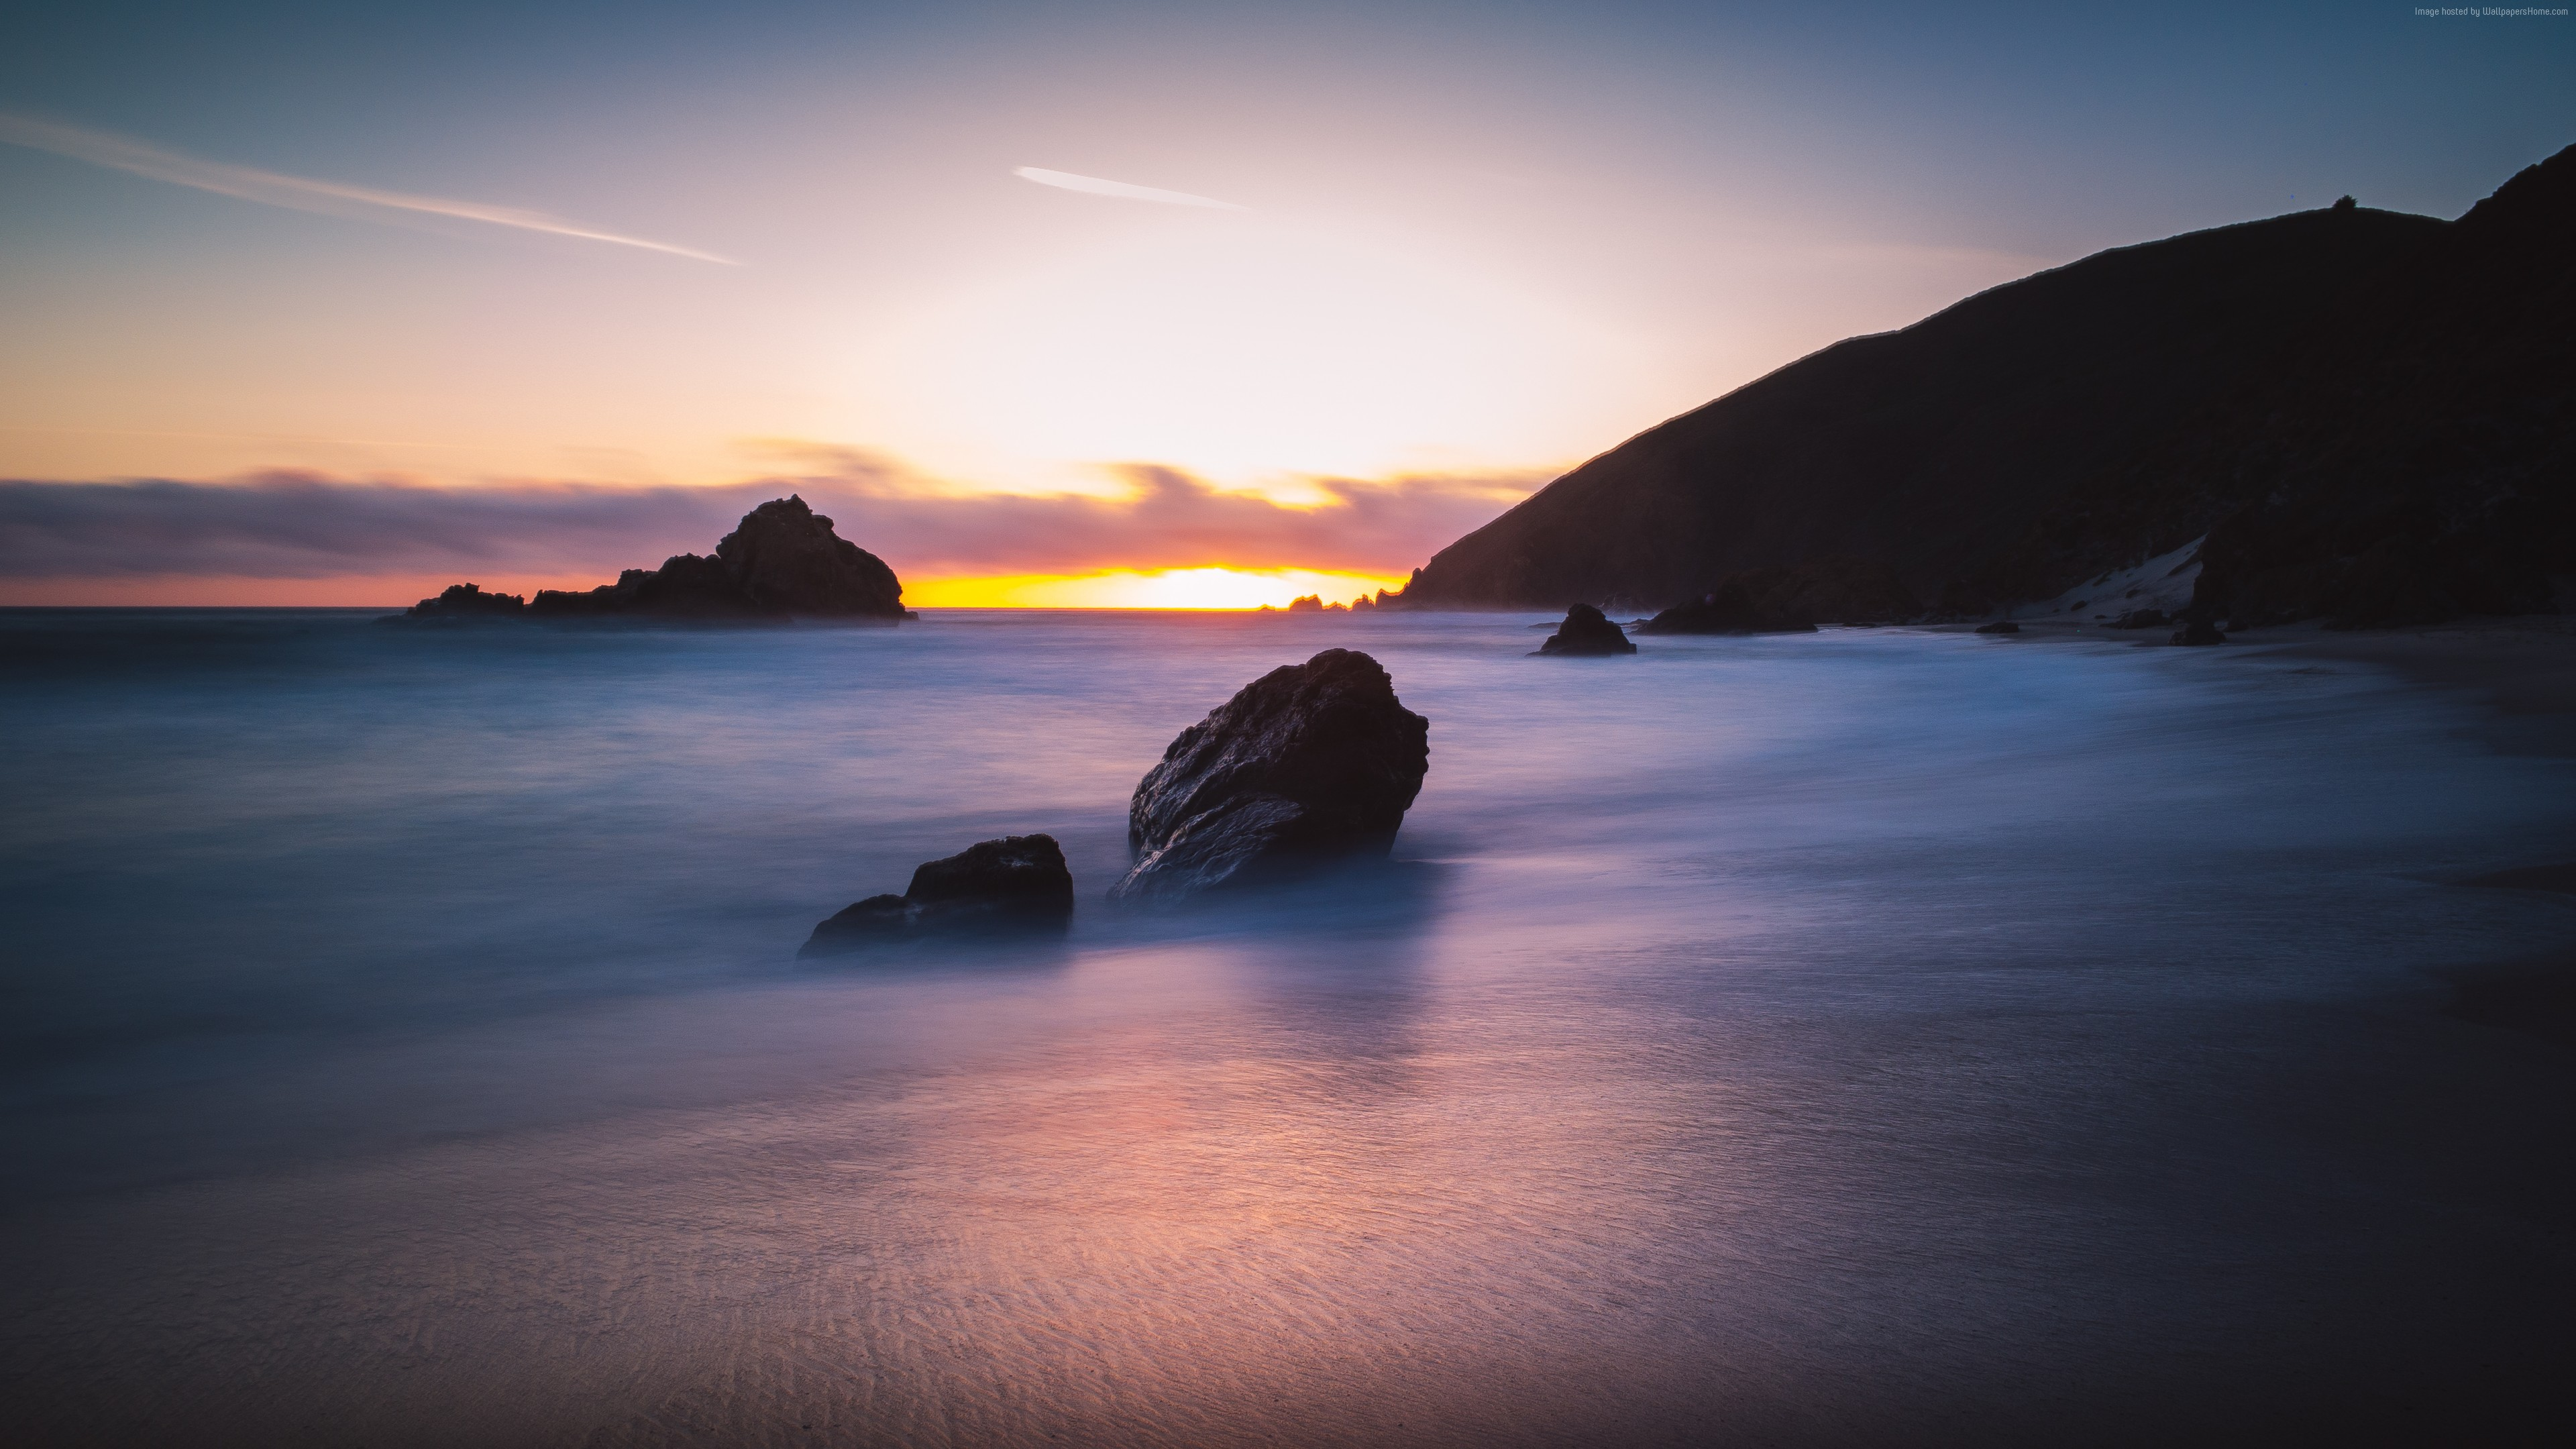 Wallpaper Pfeiffer Beach, 5k, 4k wallpaper, Big Sur, California, USA, Best Beaches in the World, travel, tourism, Sunset, Travel